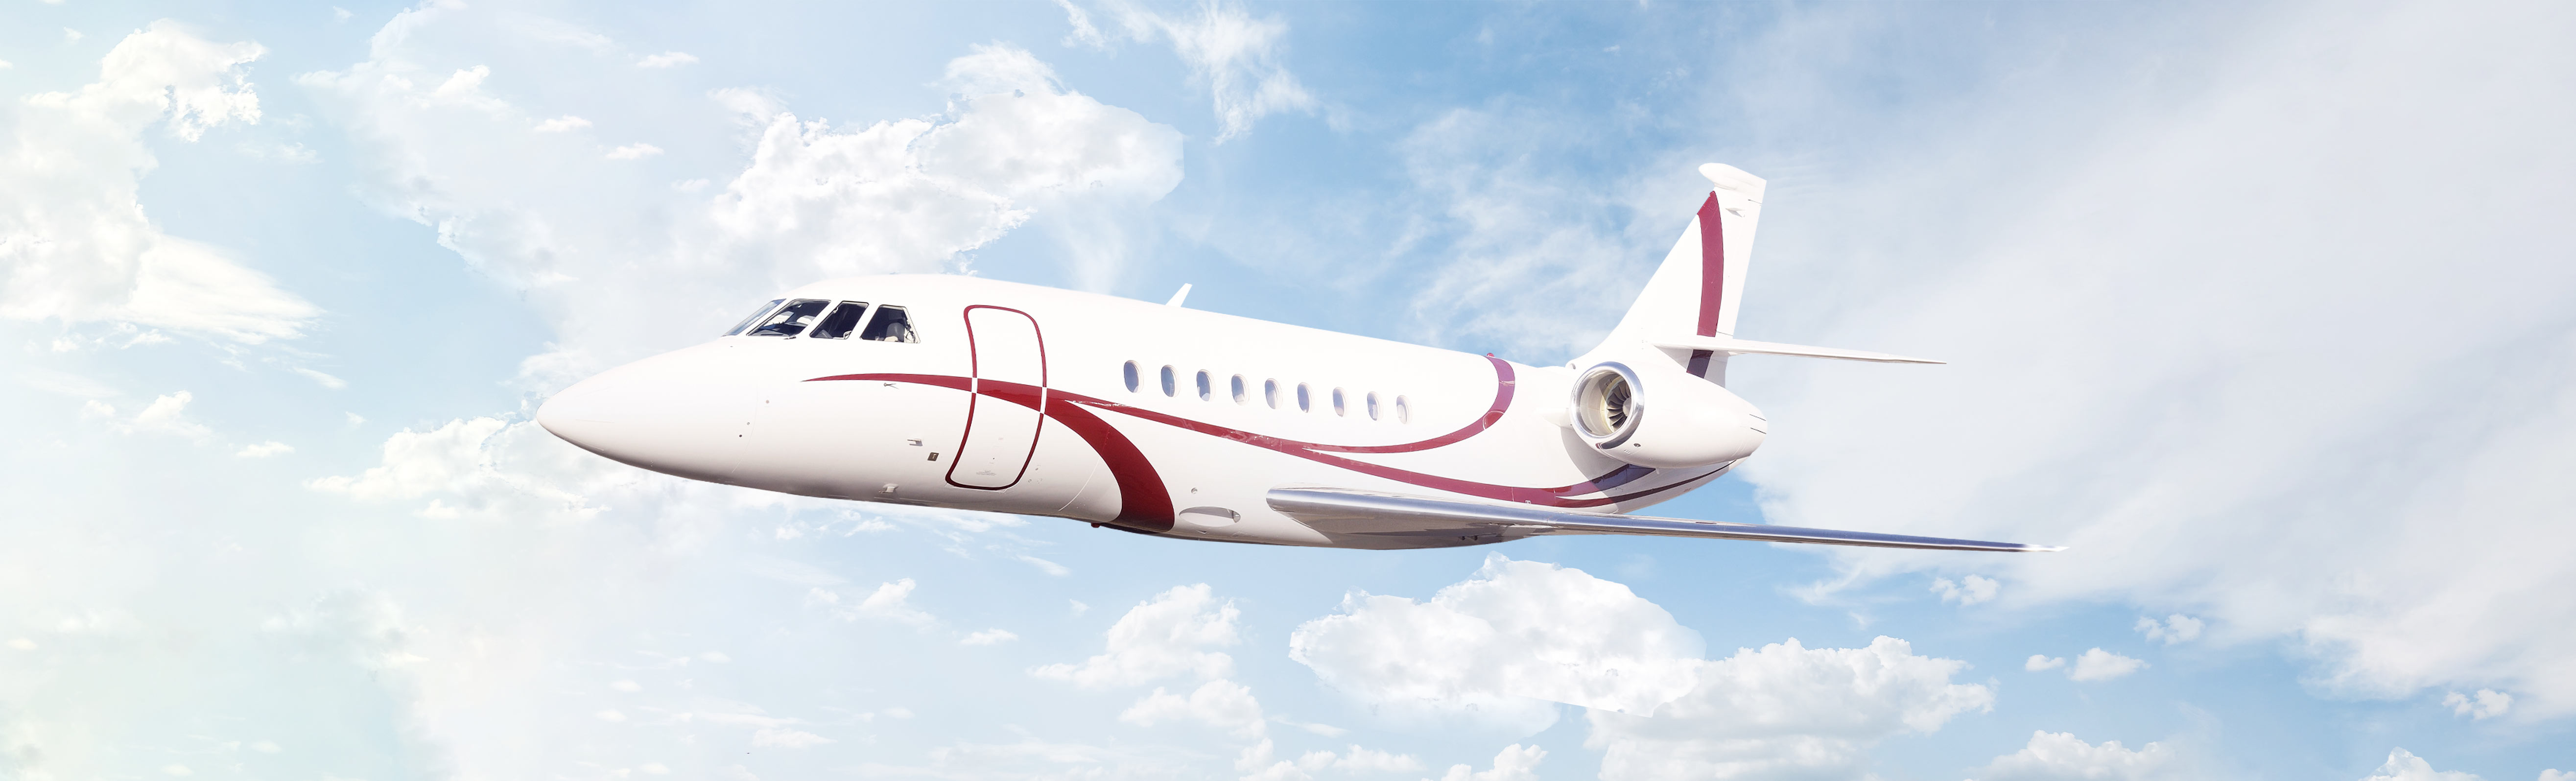 TAG Aviation expands its charter fleet with the addition of a new Dassault Falcon 2000LXS